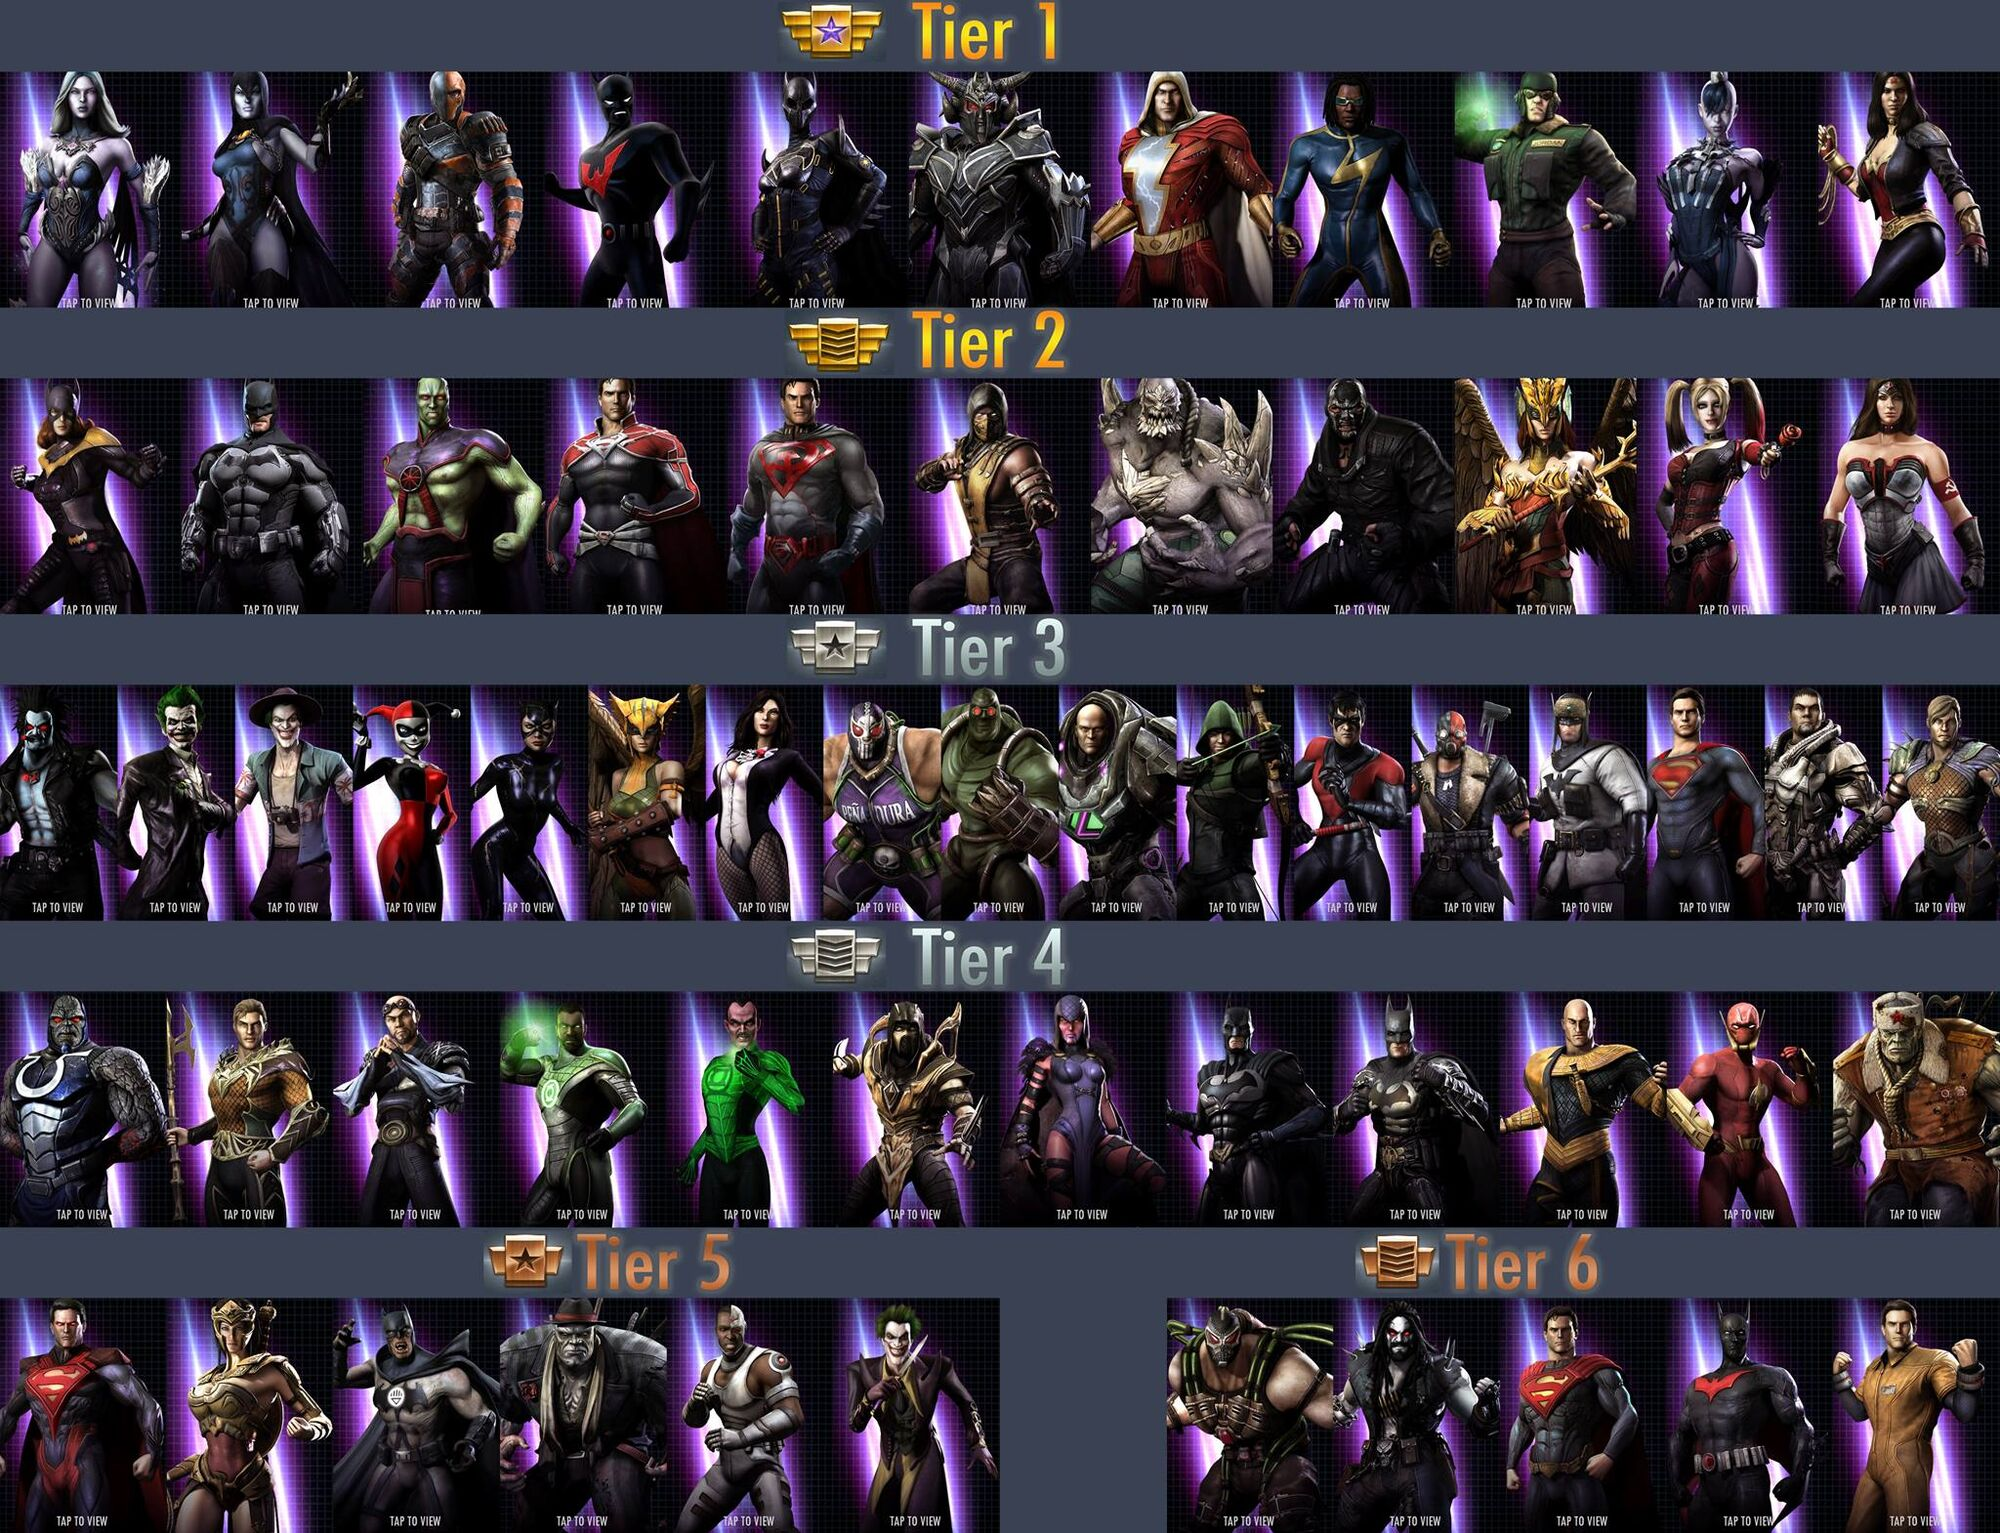 Character Tier List | Injustice Mobile Wiki | FANDOM powered